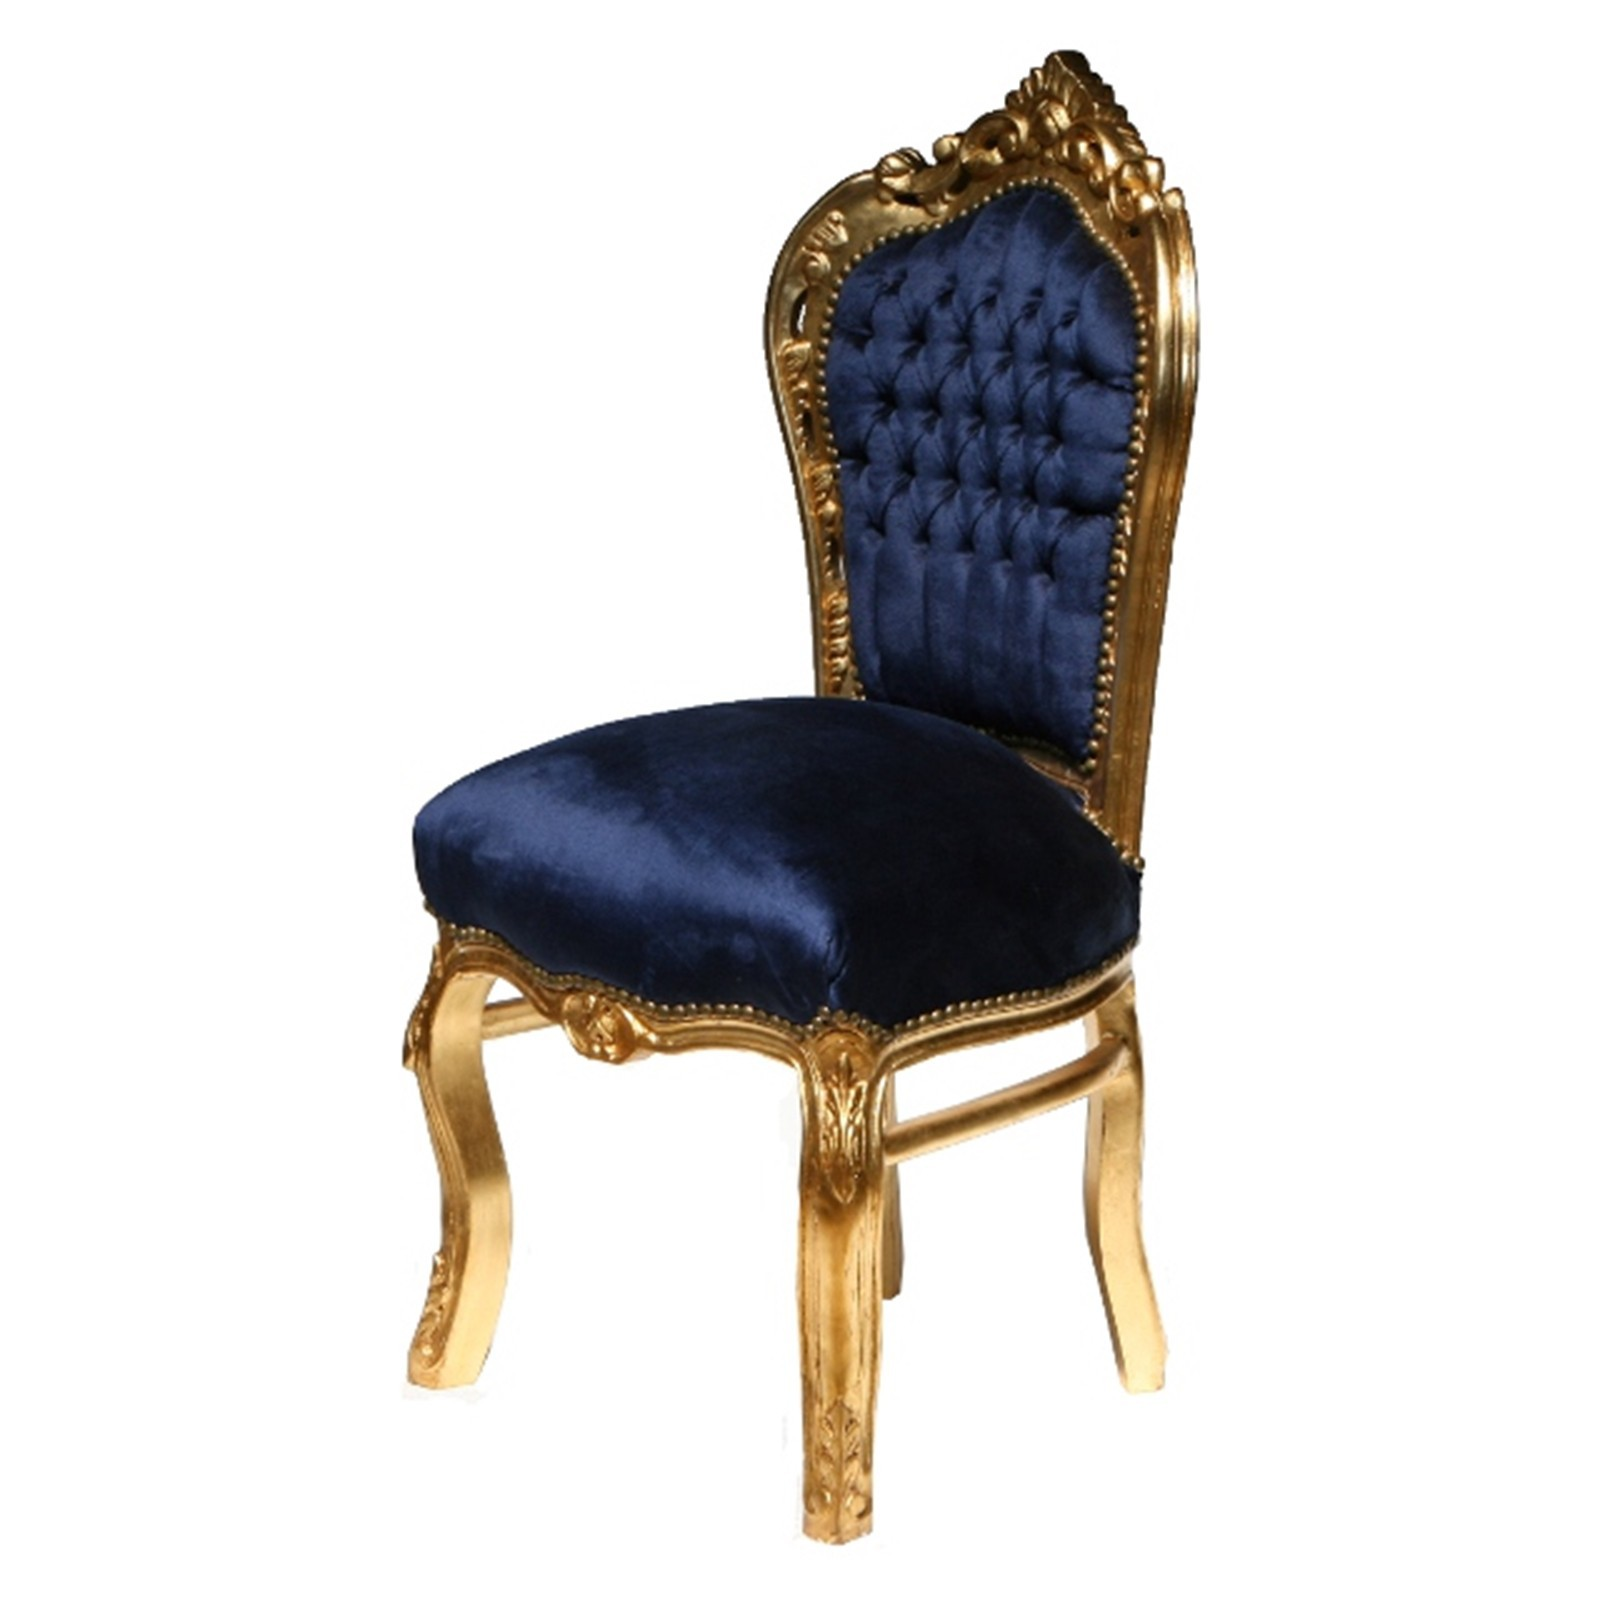 Dining Room Chairs Gold Leafed Solid Wood Navy Blue Velvet Bild 3